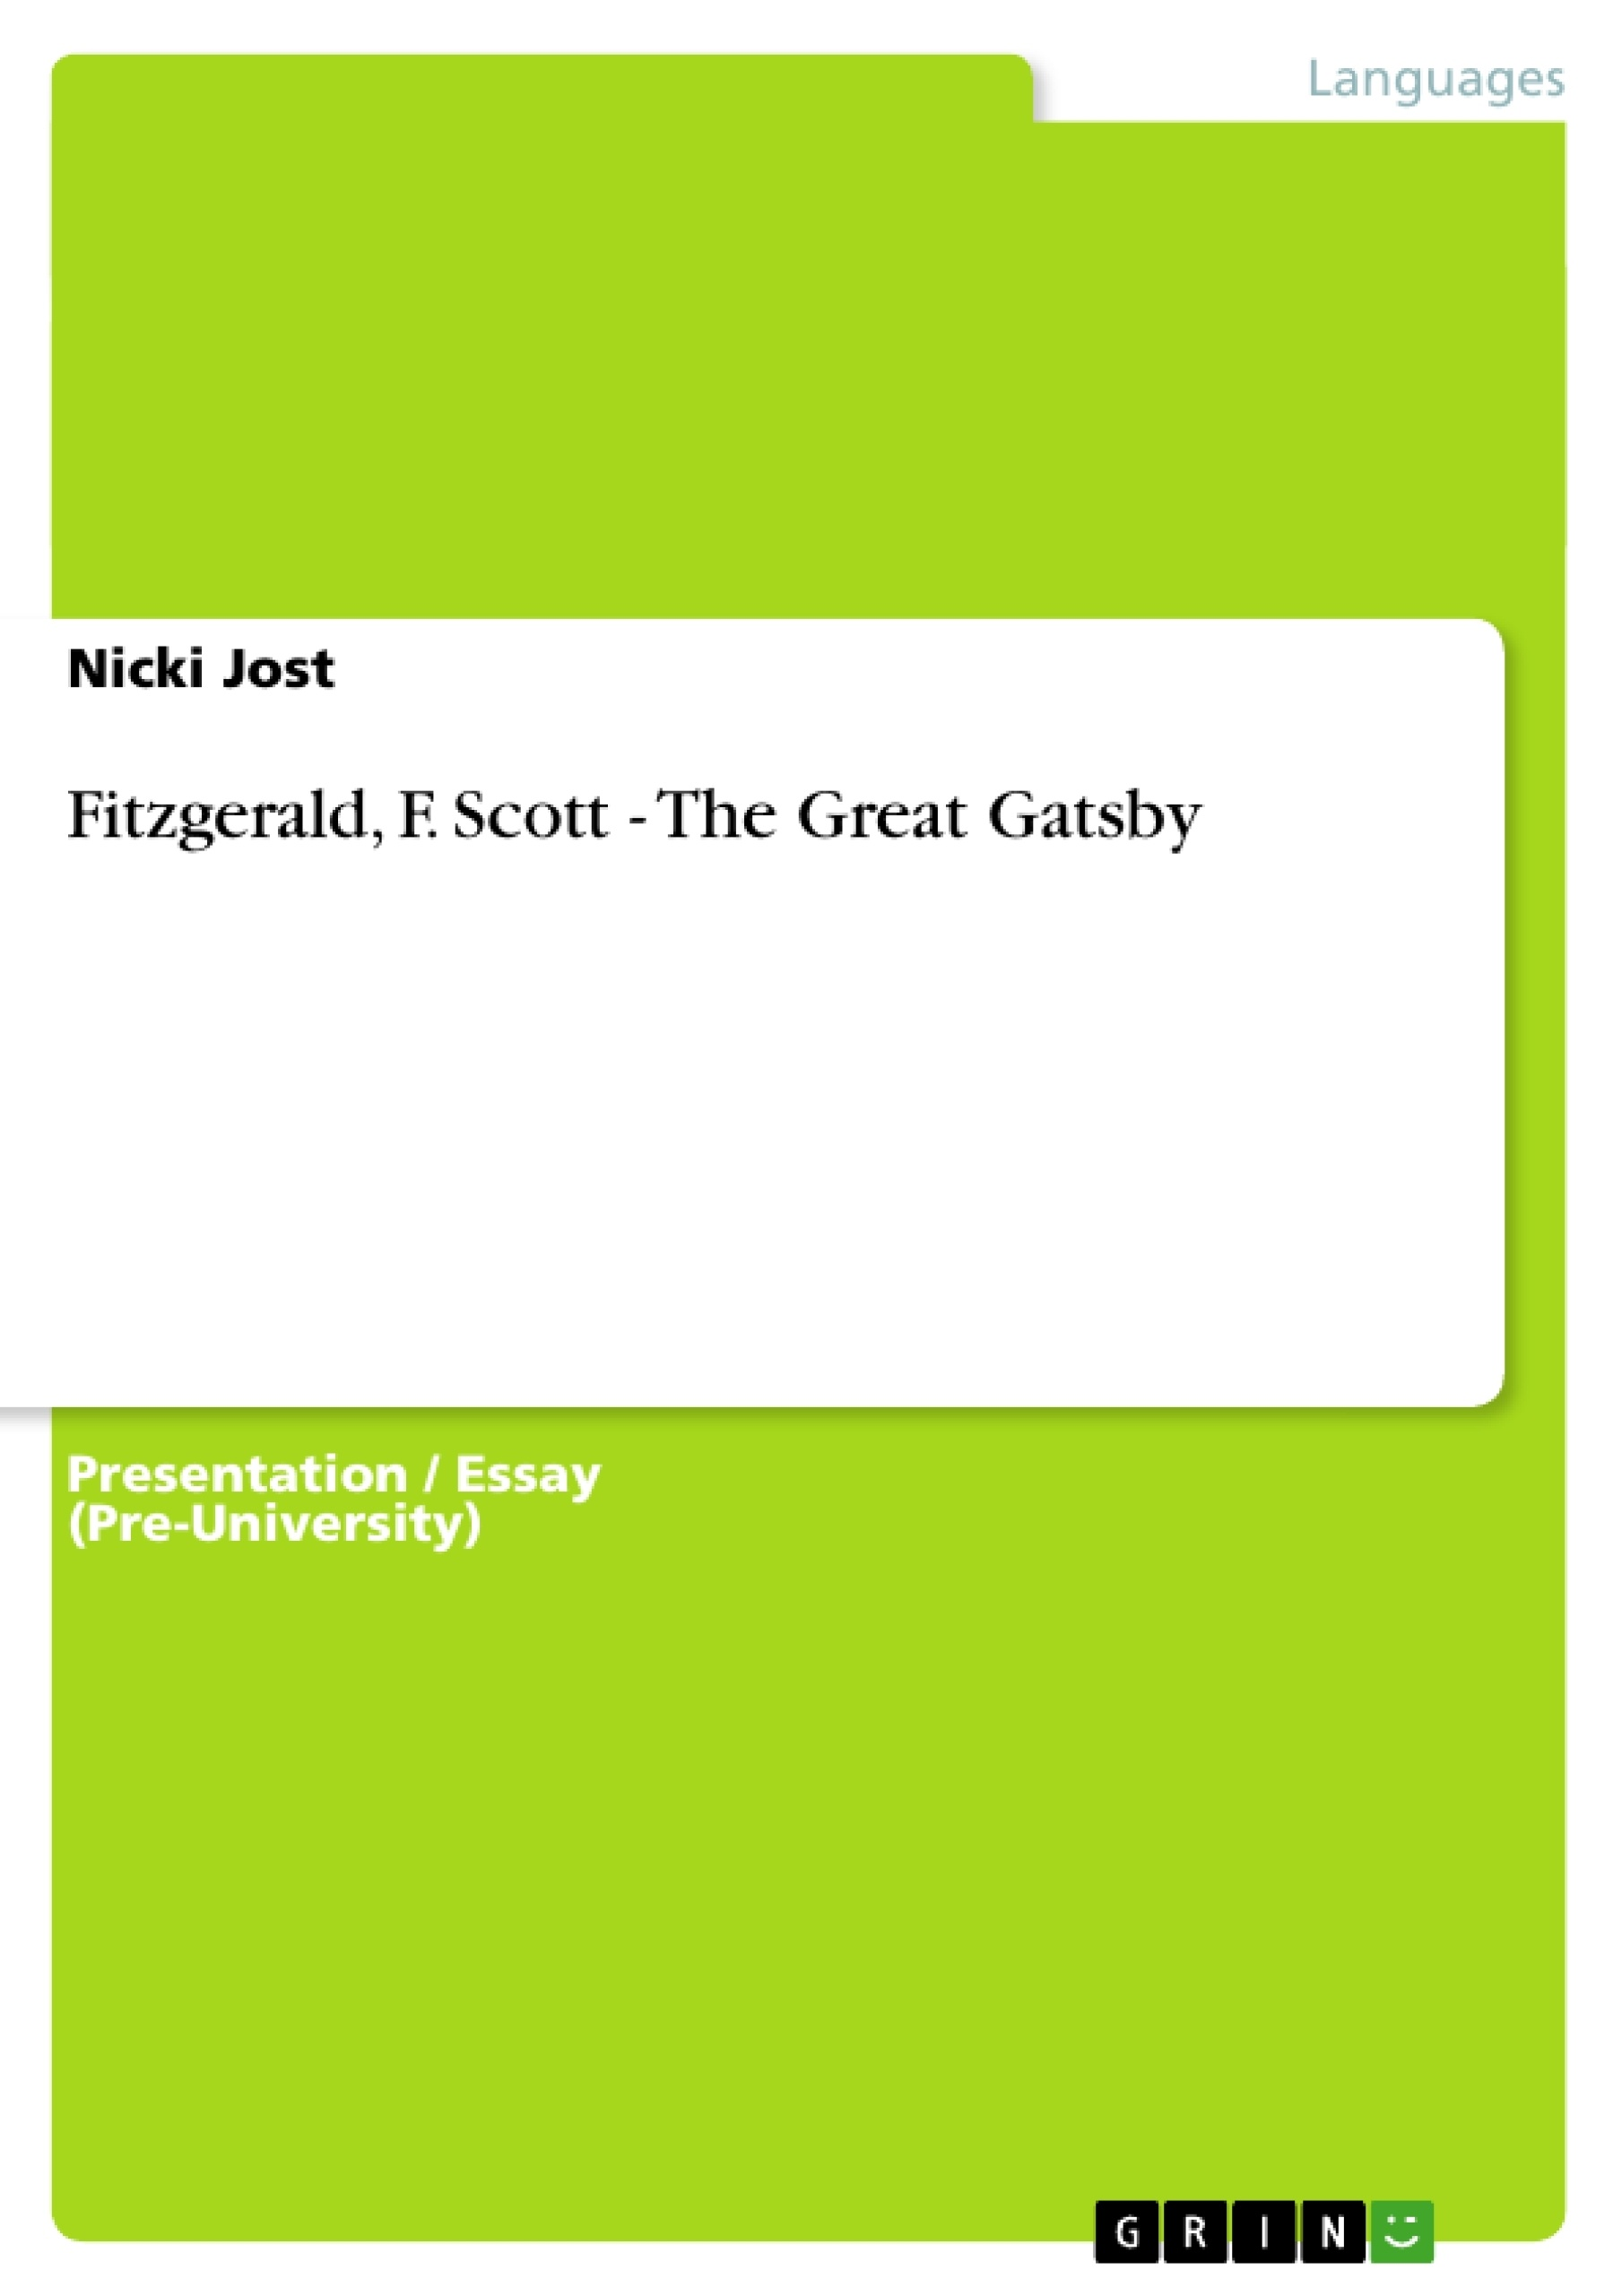 Why Is Gatsby Great Essay Great Gatsby Essays Essay Comparing  Fitzgerald F Scott The Great Gatsby Publish Your Master S Fitzgerald F  Scott The Great Gatsby